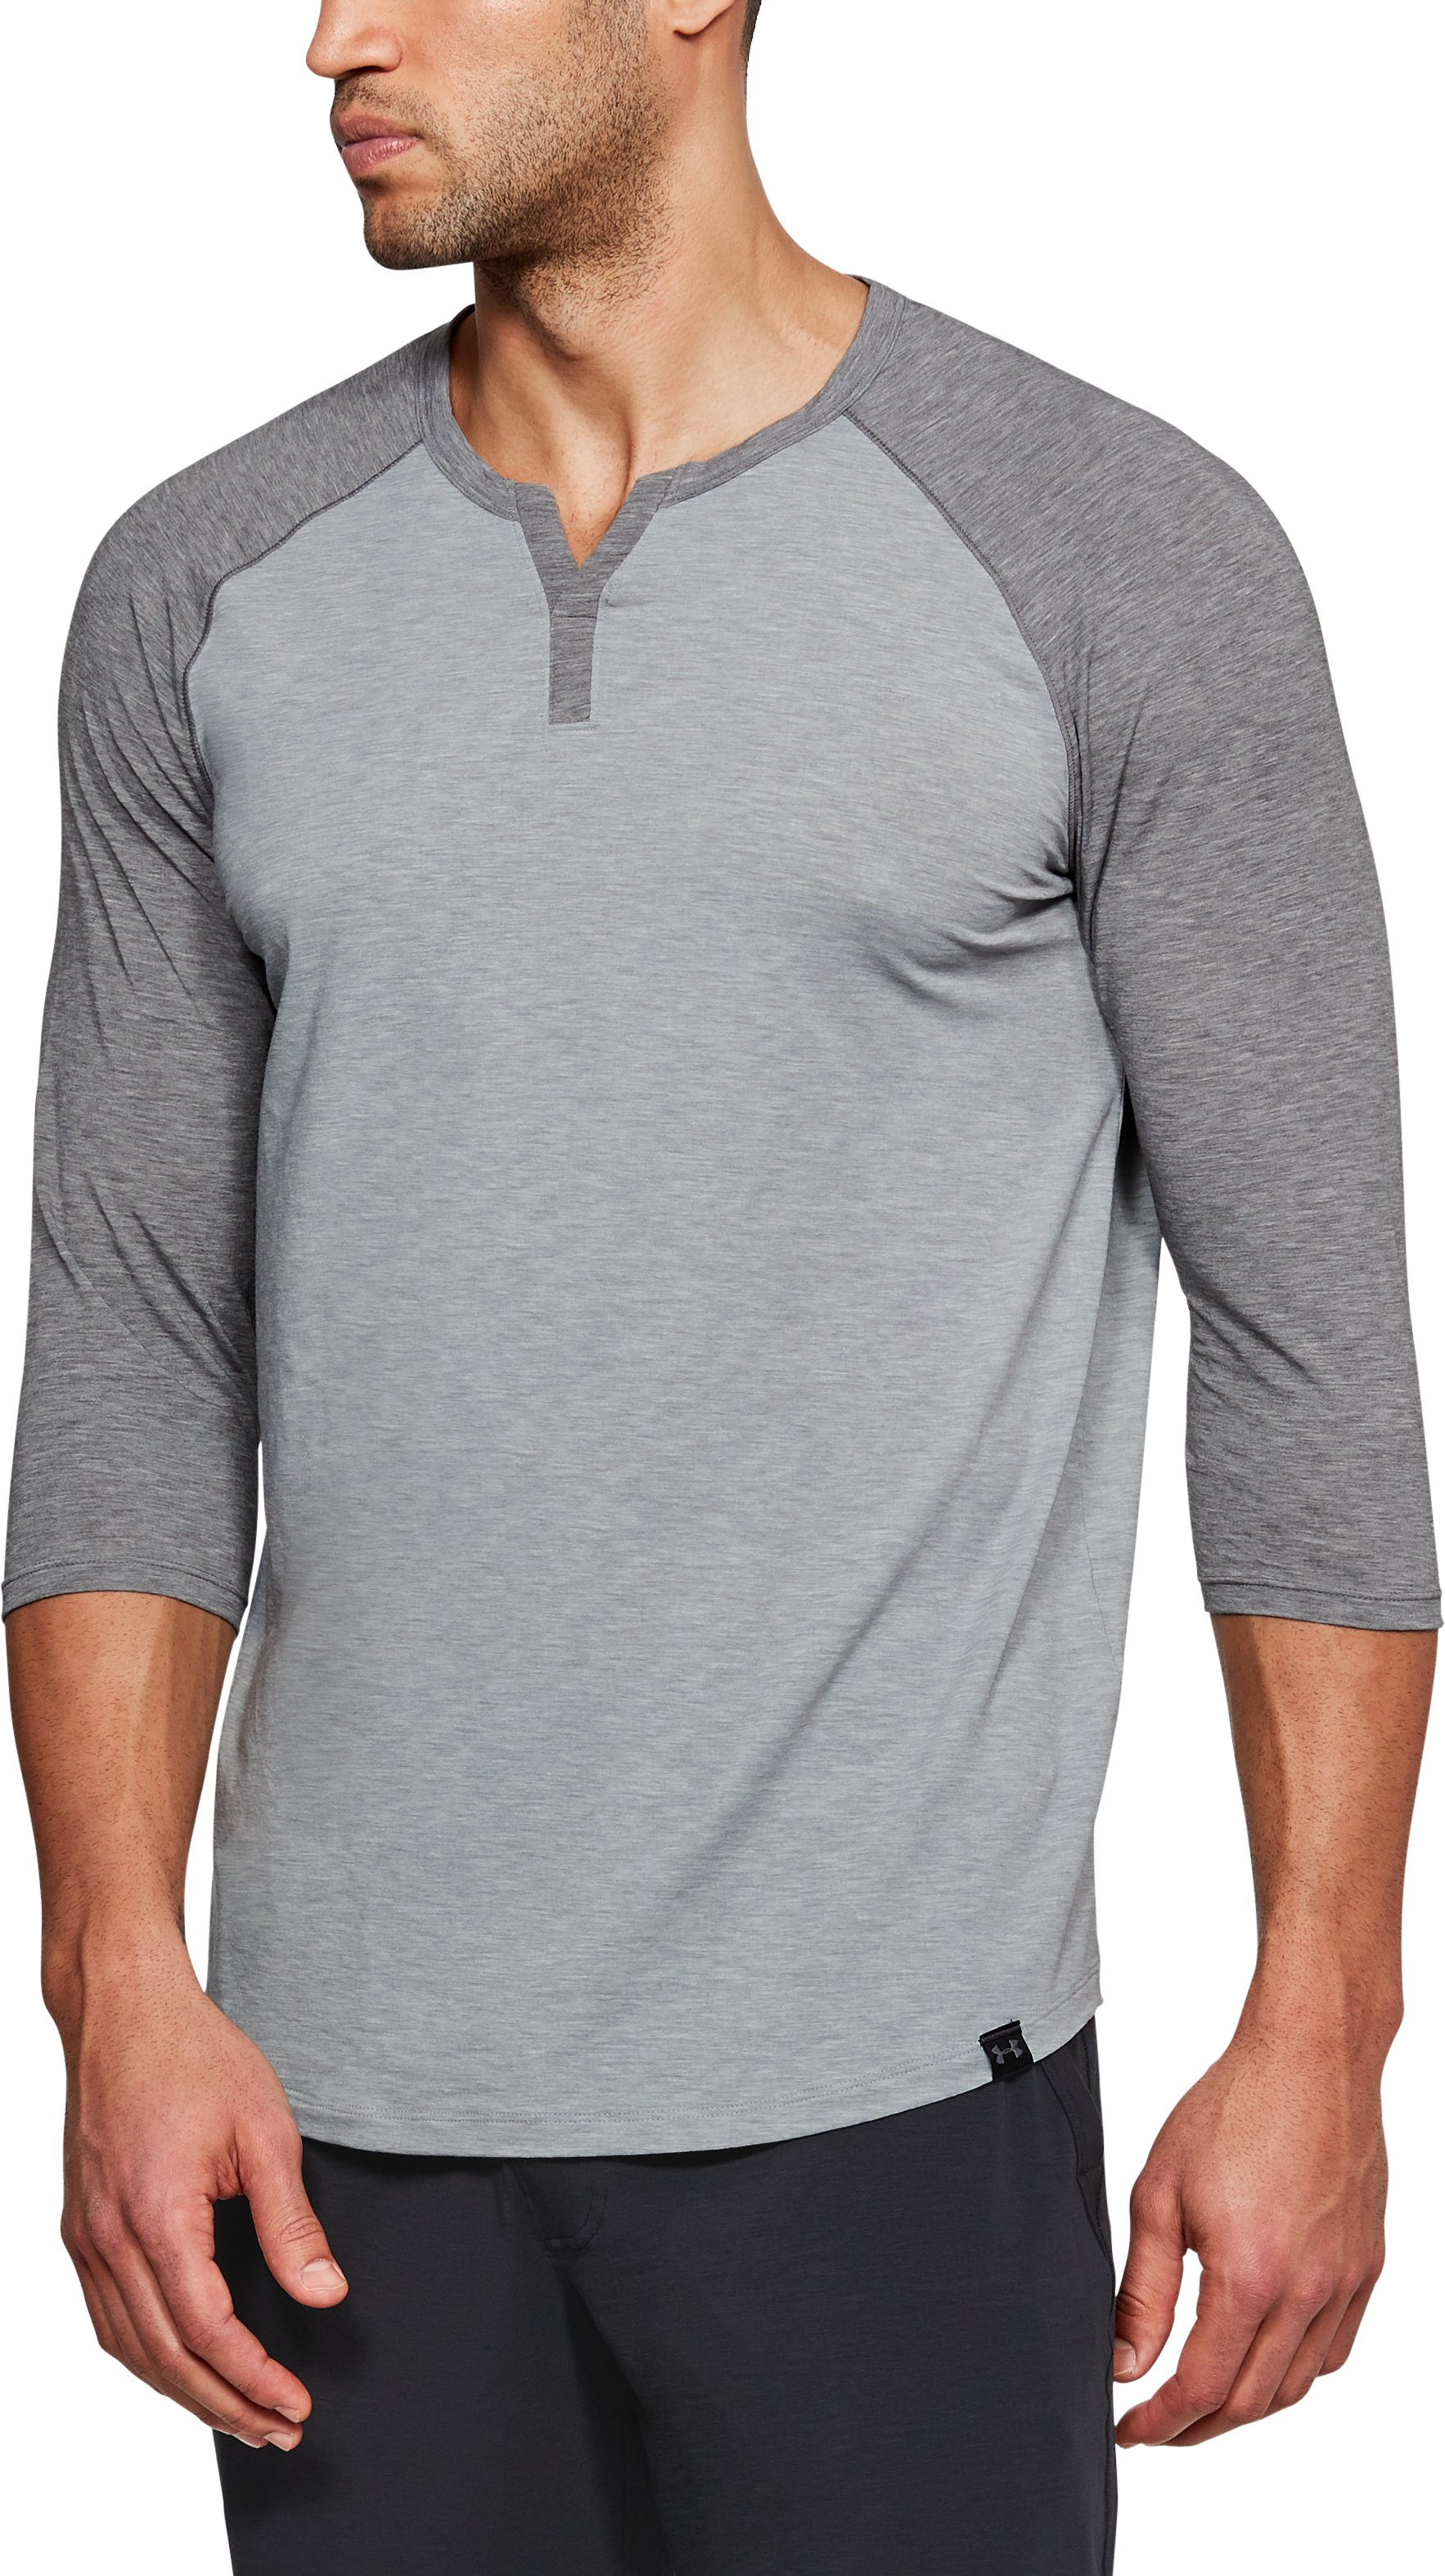 Men's Athlete Recovery Sleepwear Henley, STEEL FADE HEATHER